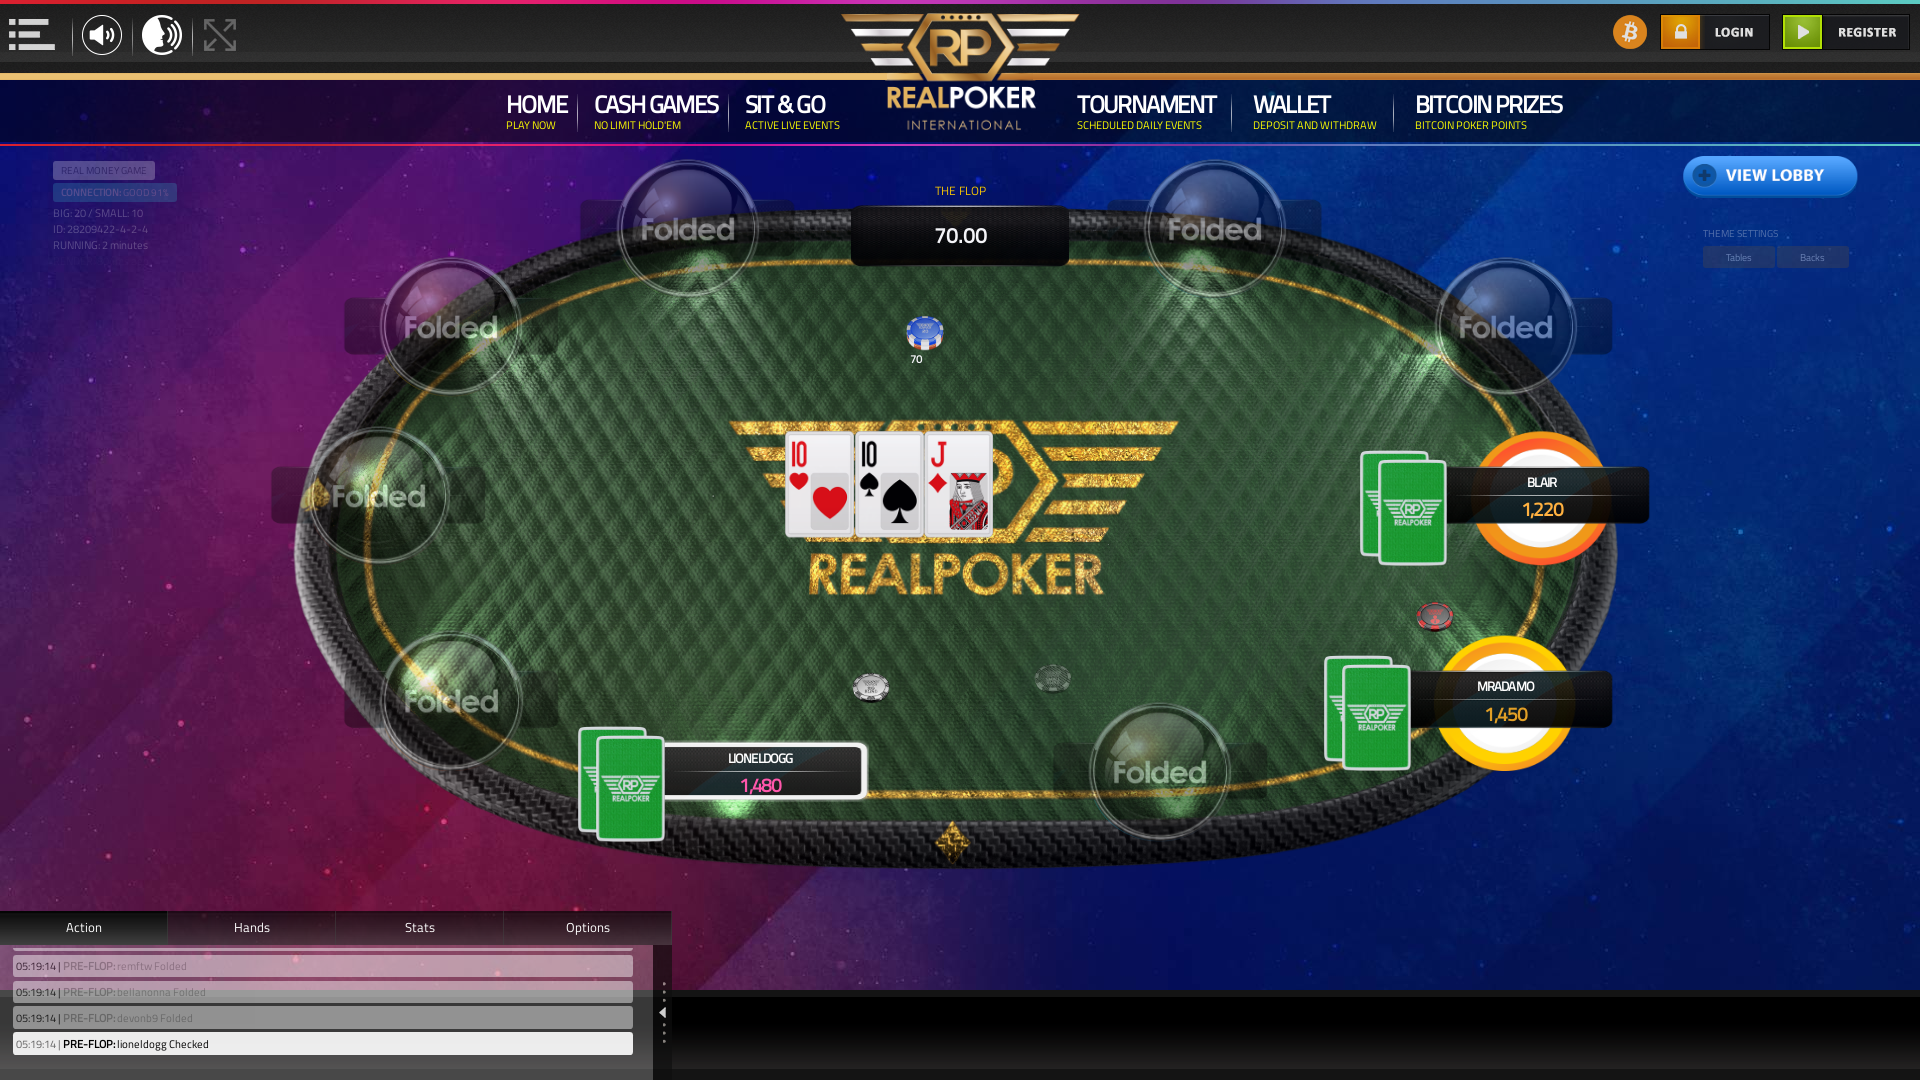 Online poker on a 10 player table in the 2nd minute match up